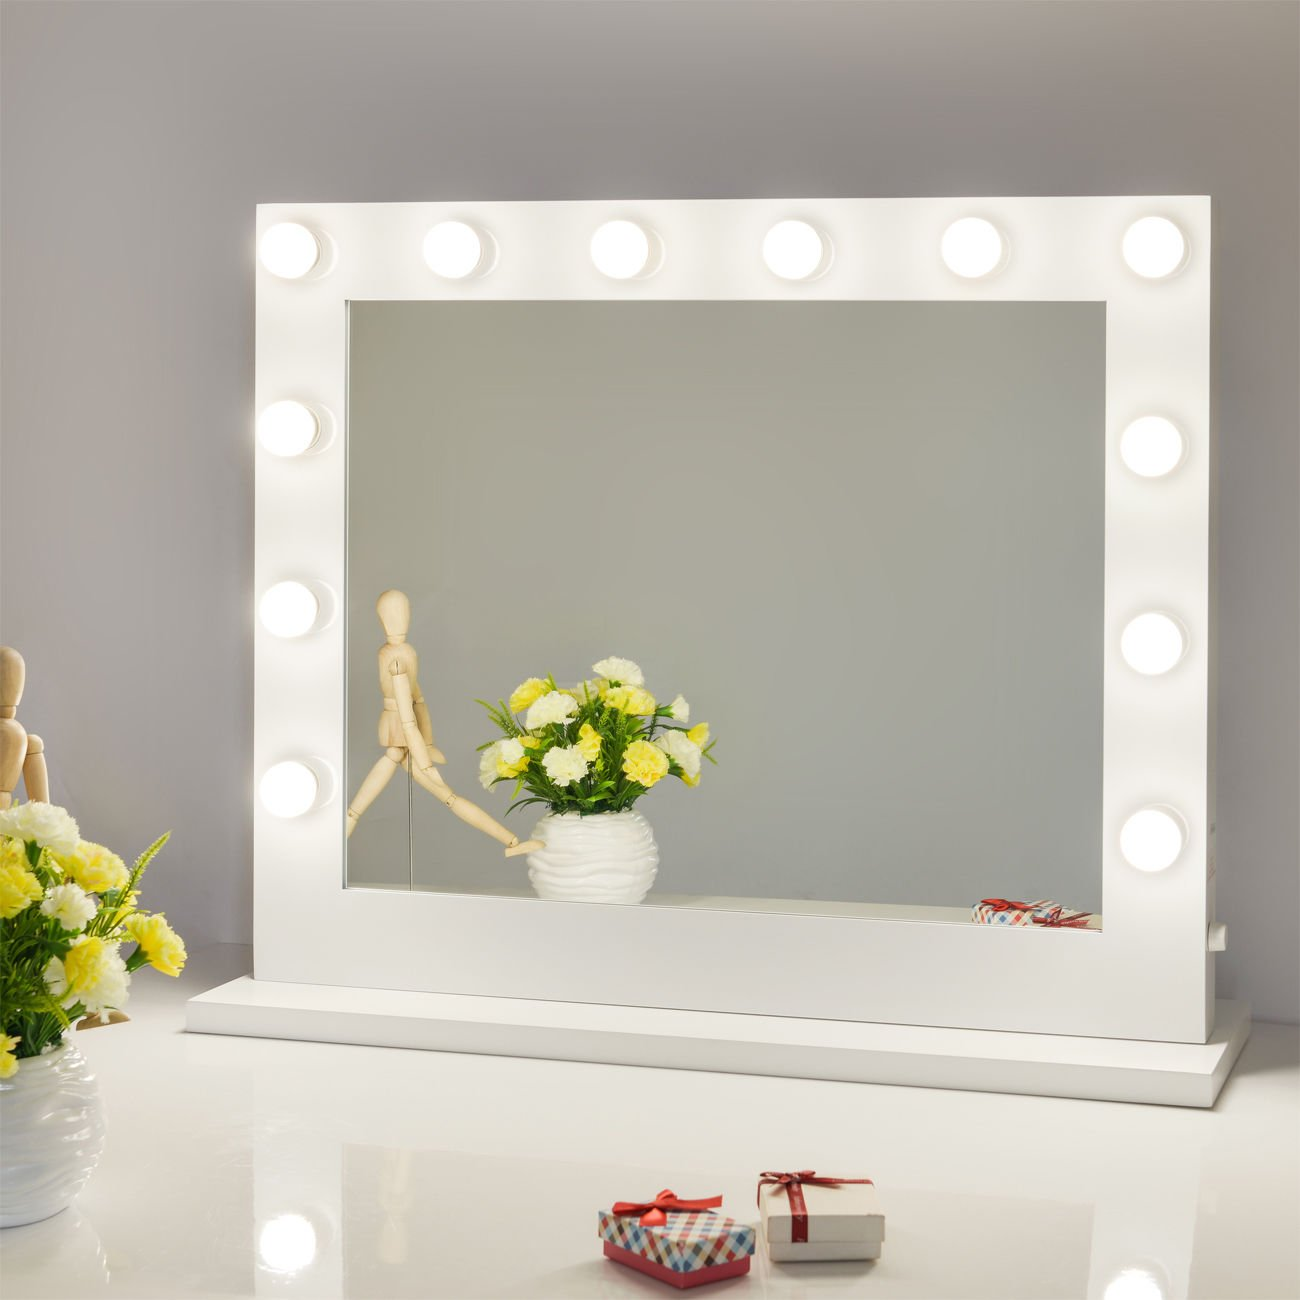 Marvelous Amazon.com: Chende White Hollywood Lighted Makeup Vanity Mirror Light,  Makeup Dressing Table Vanity Set Mirrors With Dimmer, Tabletop Or Wall  Mounted Vanity ...